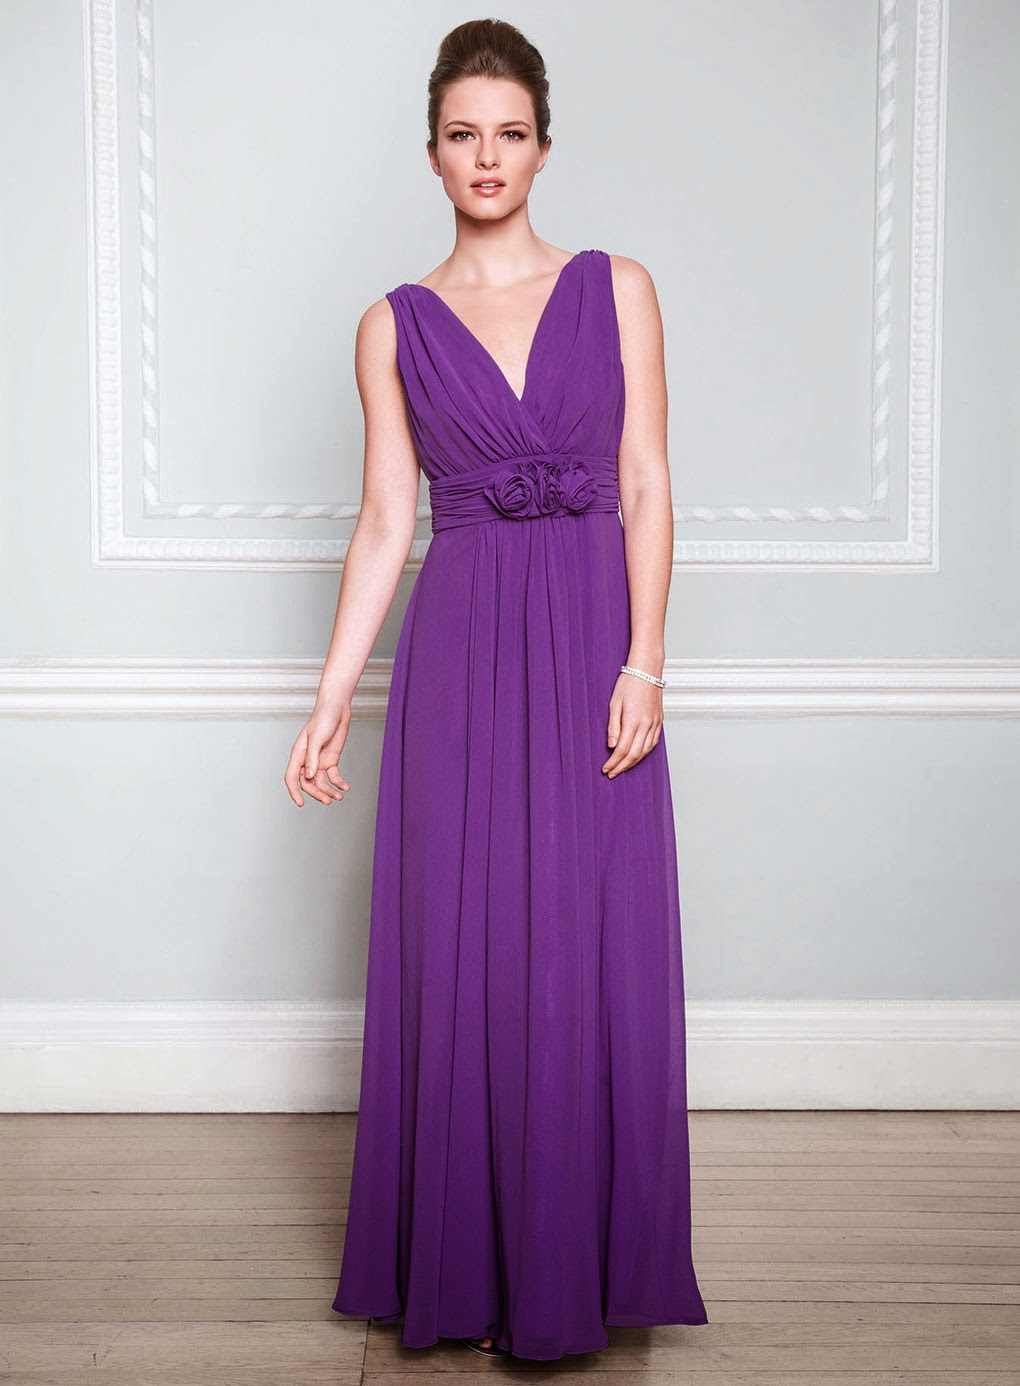 Visit My Evening Dress for a gorgeous selection of UK manufactured affordable evening dresses prom and bridesmaid dresses at great prices shop online today